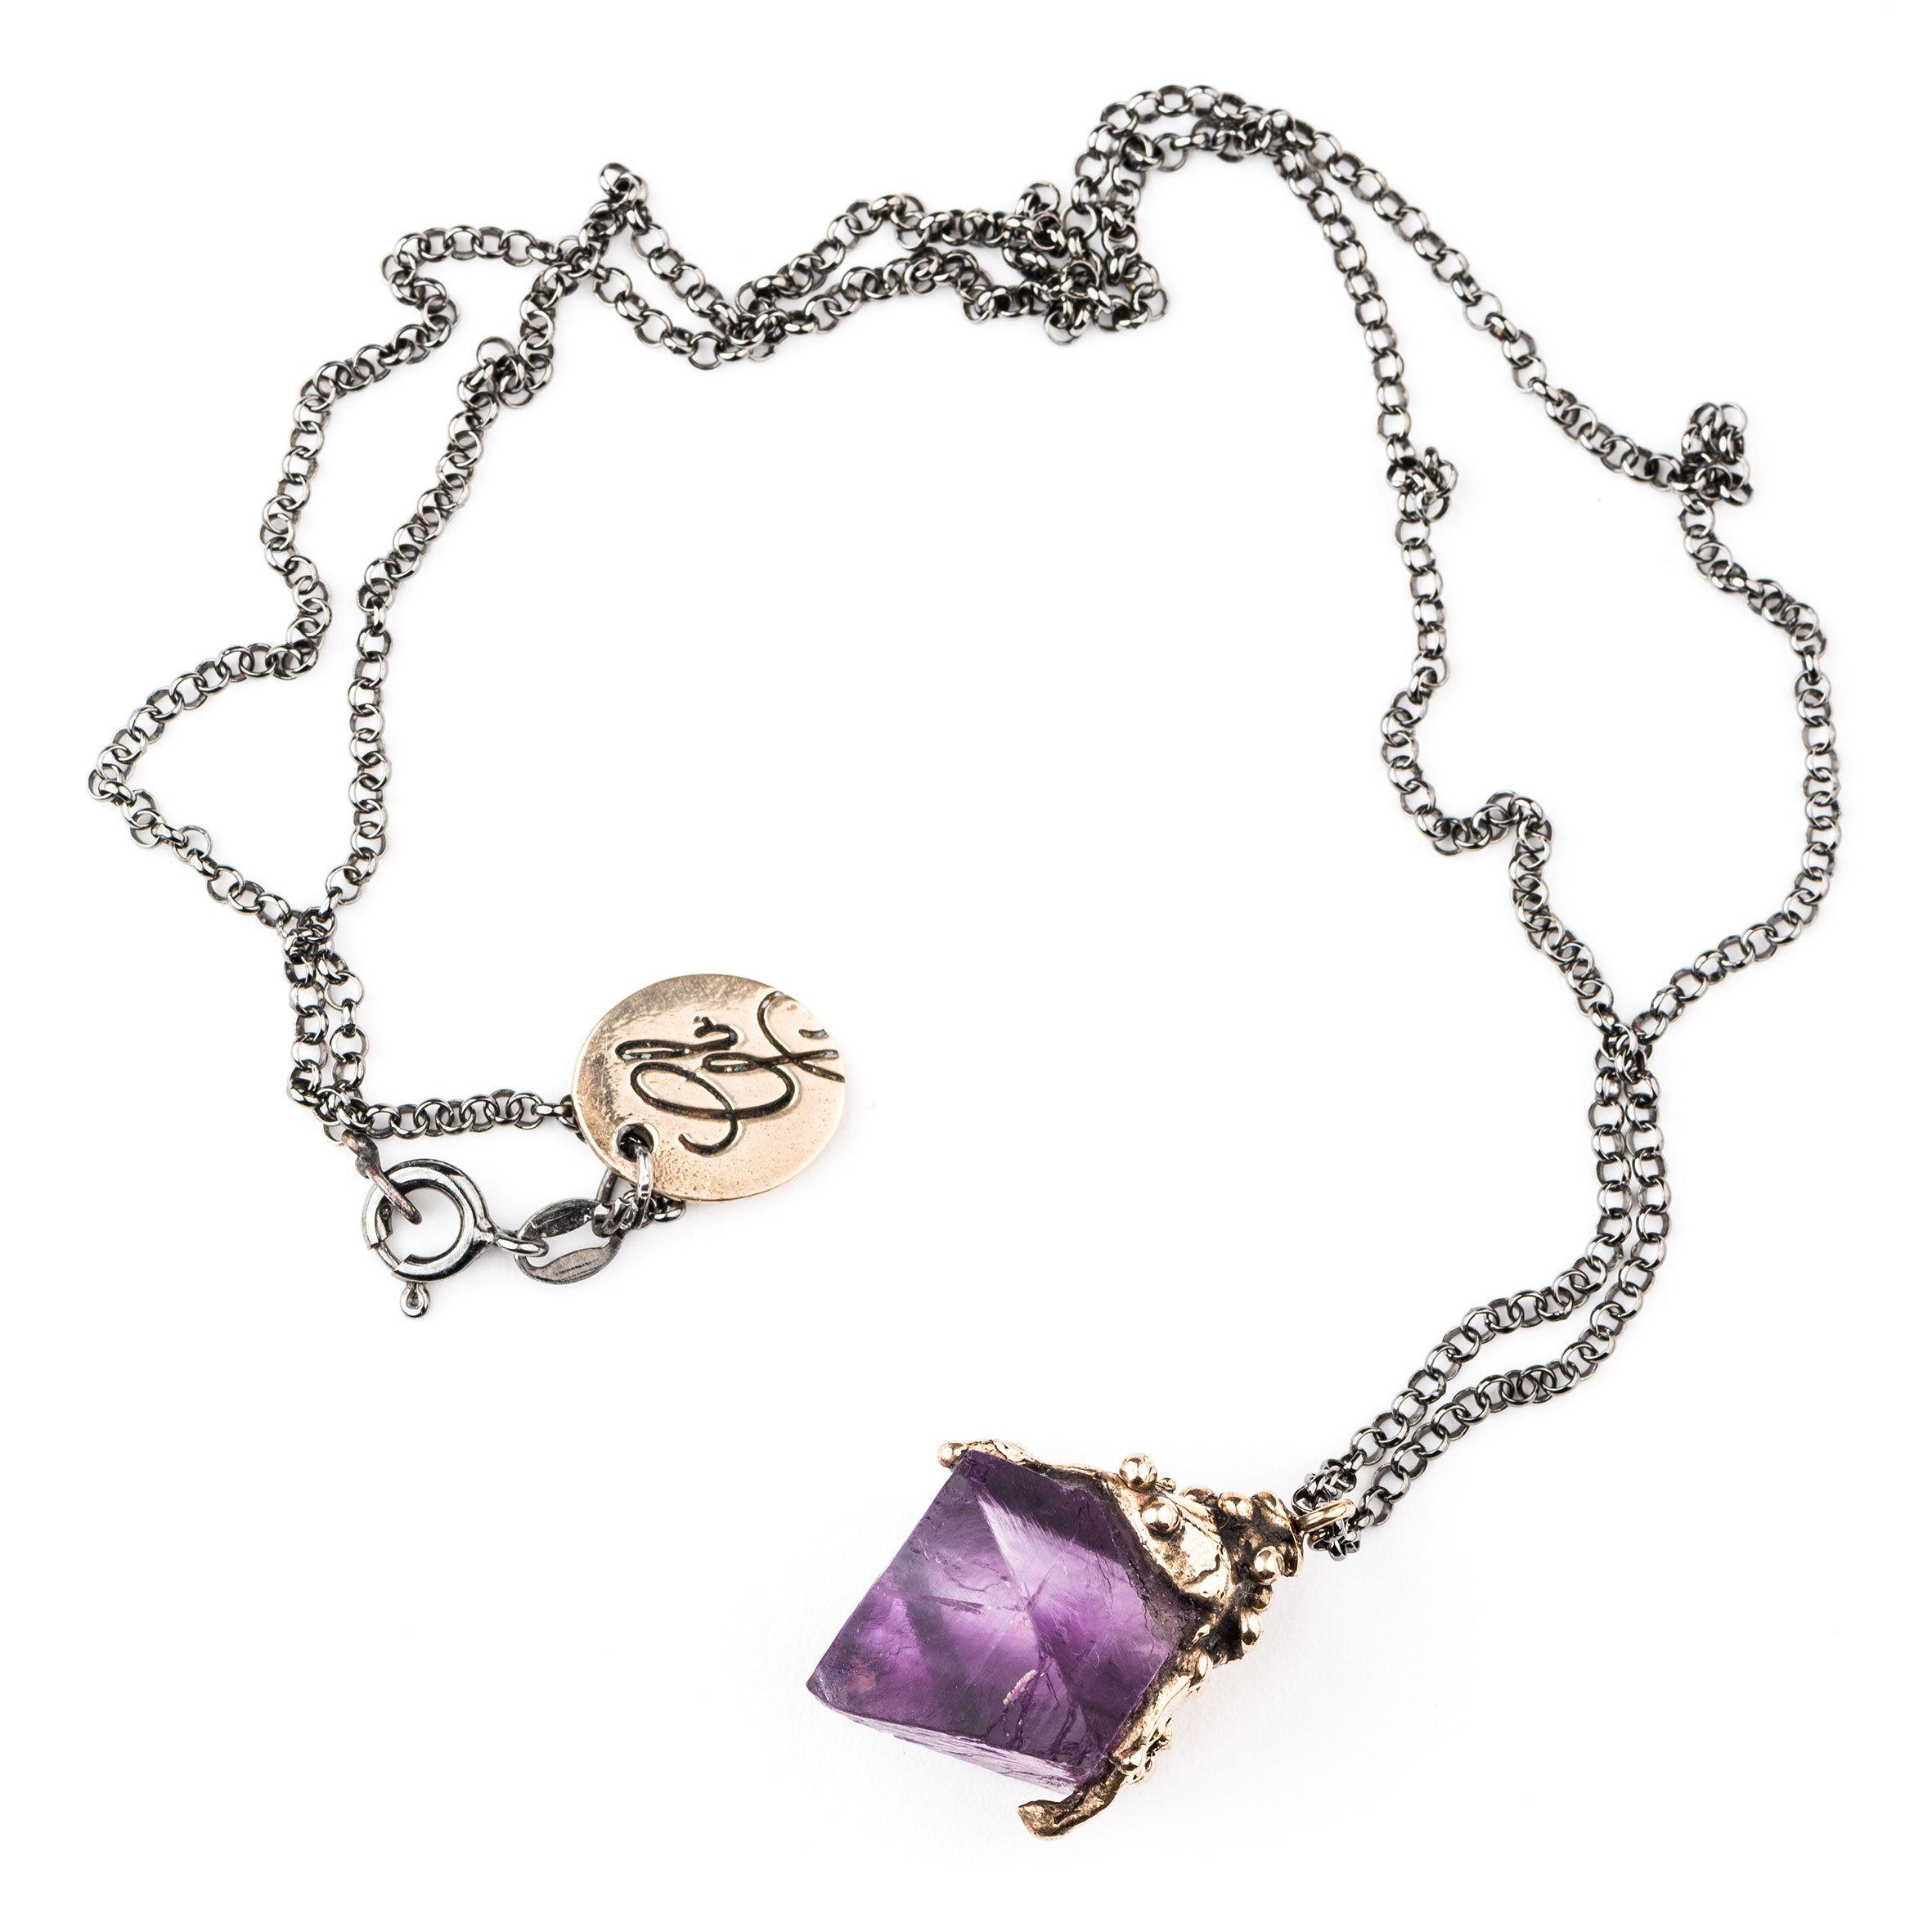 Necklace - Purple Fluorite Crystal Necklace - One Of A Kind